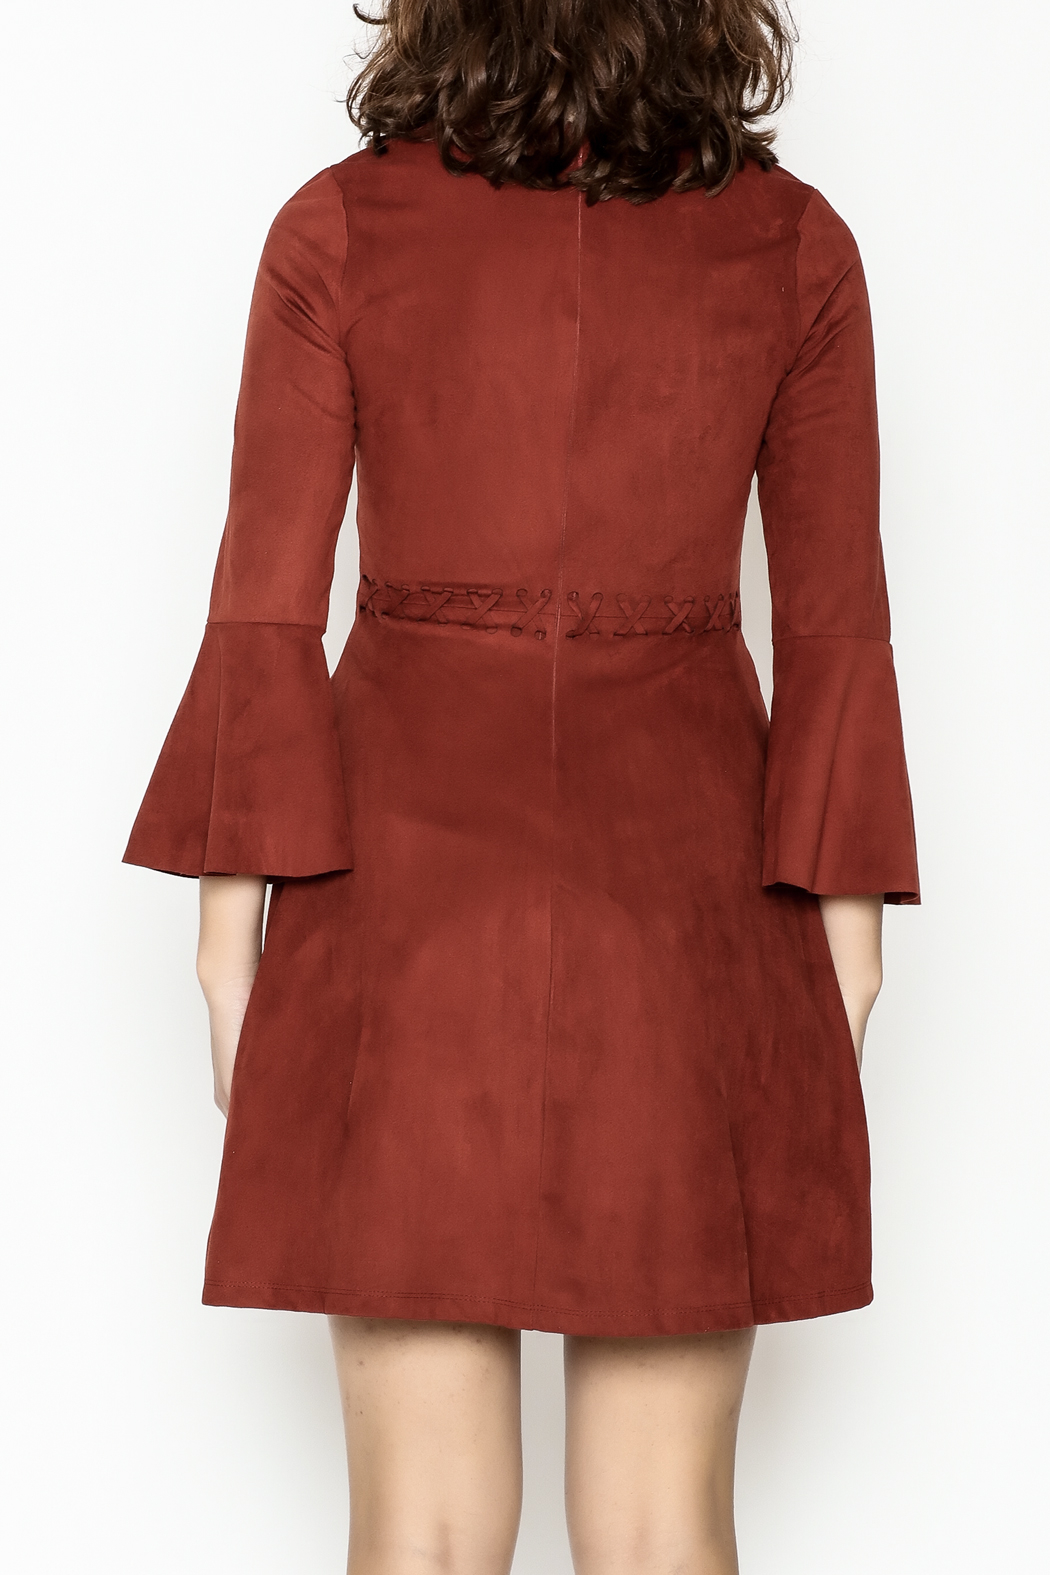 Black Swan Faux Suede Rust Dress - Back Cropped Image